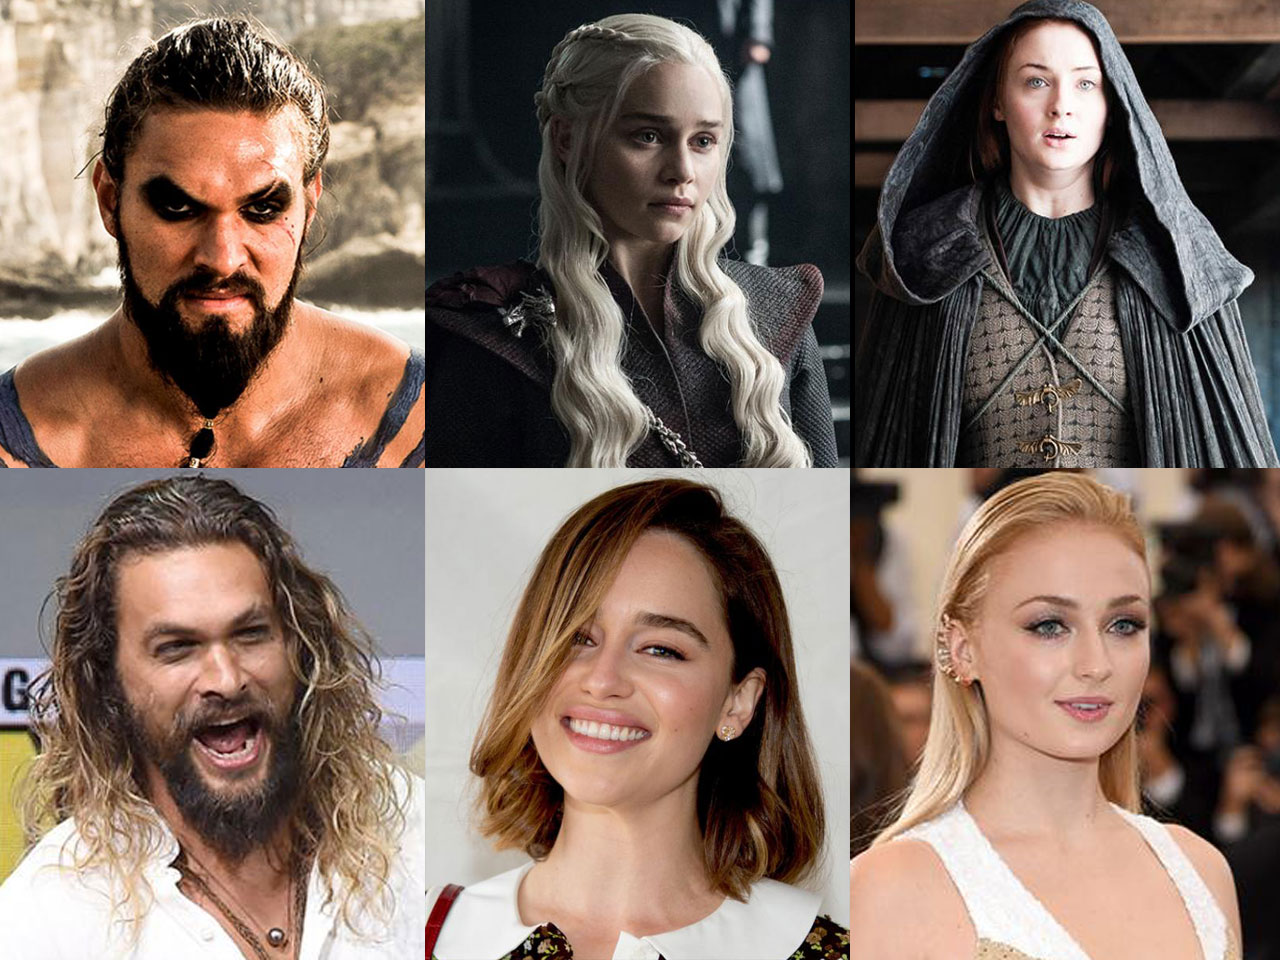 What These Game Of Thrones Actors Look Like In Real Life Gallery